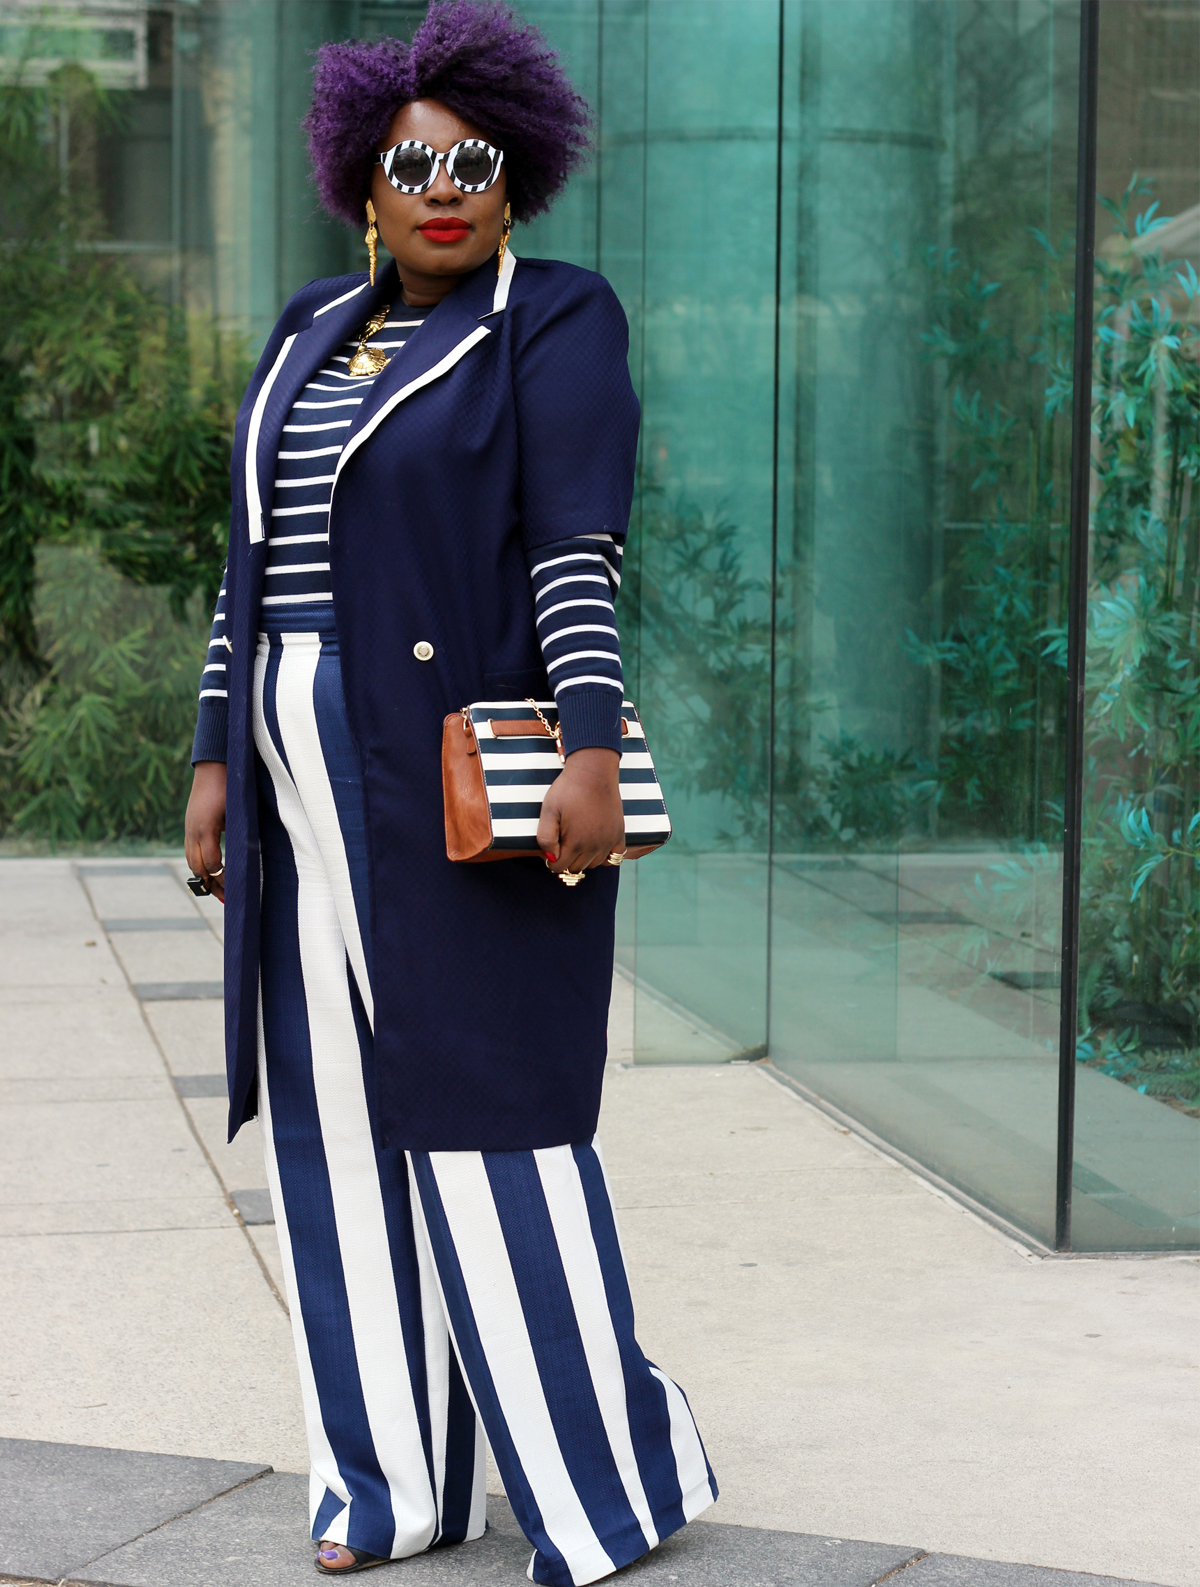 plus size style fashion week outfit stripes plus size stripes plus size street style 04